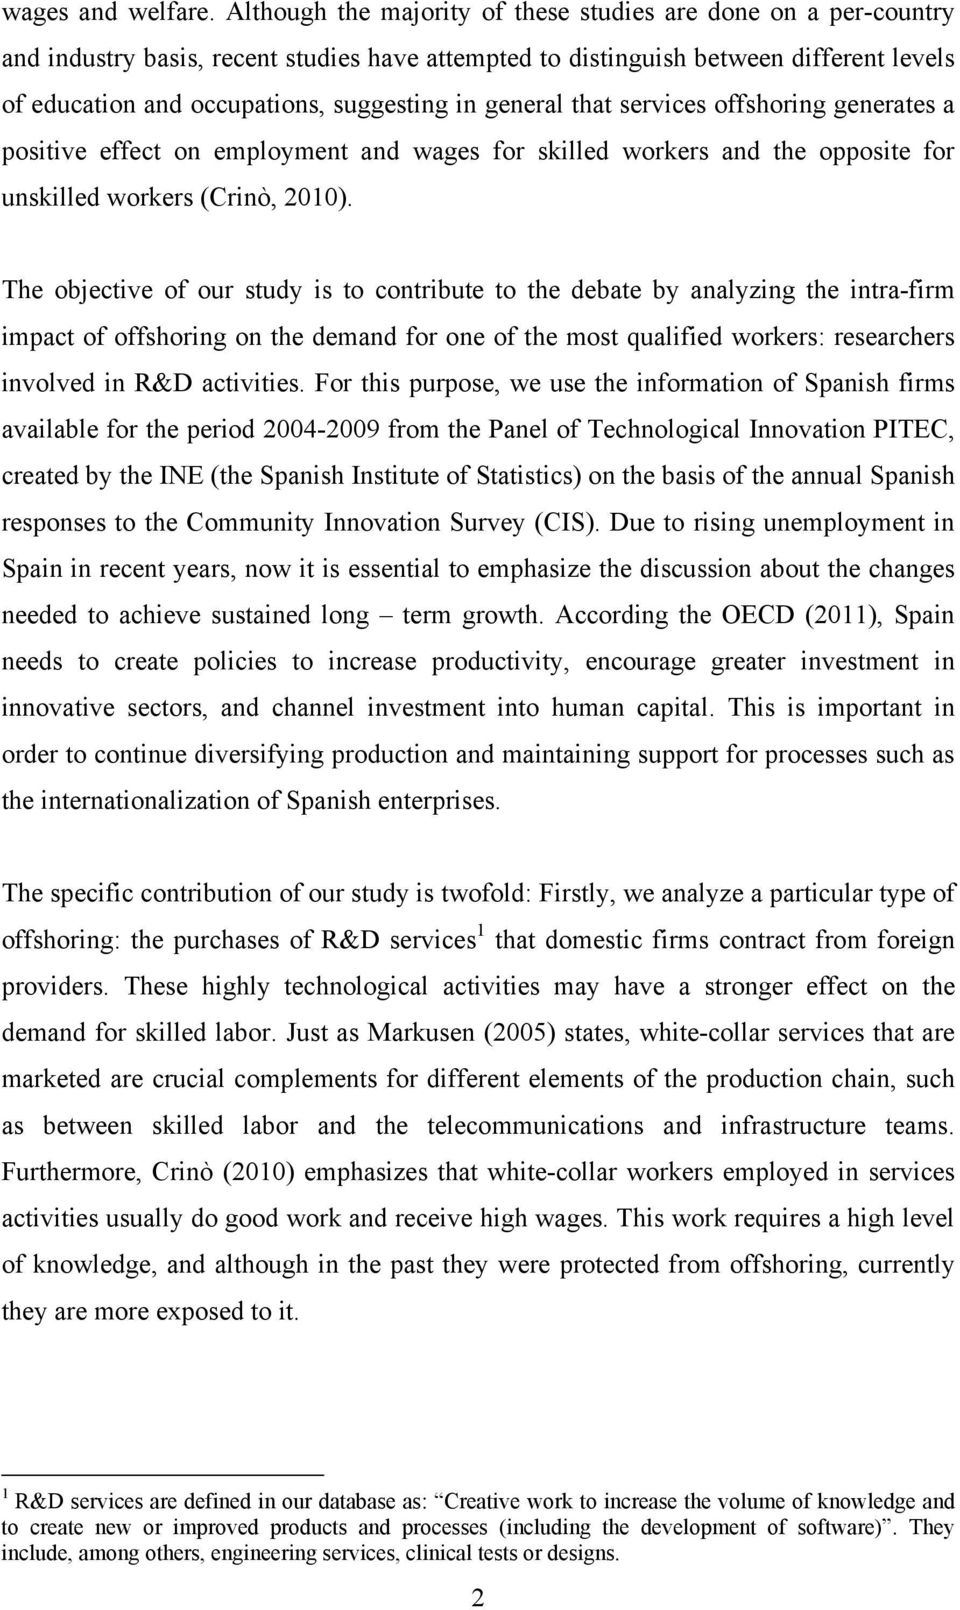 general that services offshoring generates a positive effect on employment and wages for skilled workers and the opposite for unskilled workers (Crinò, 2010).